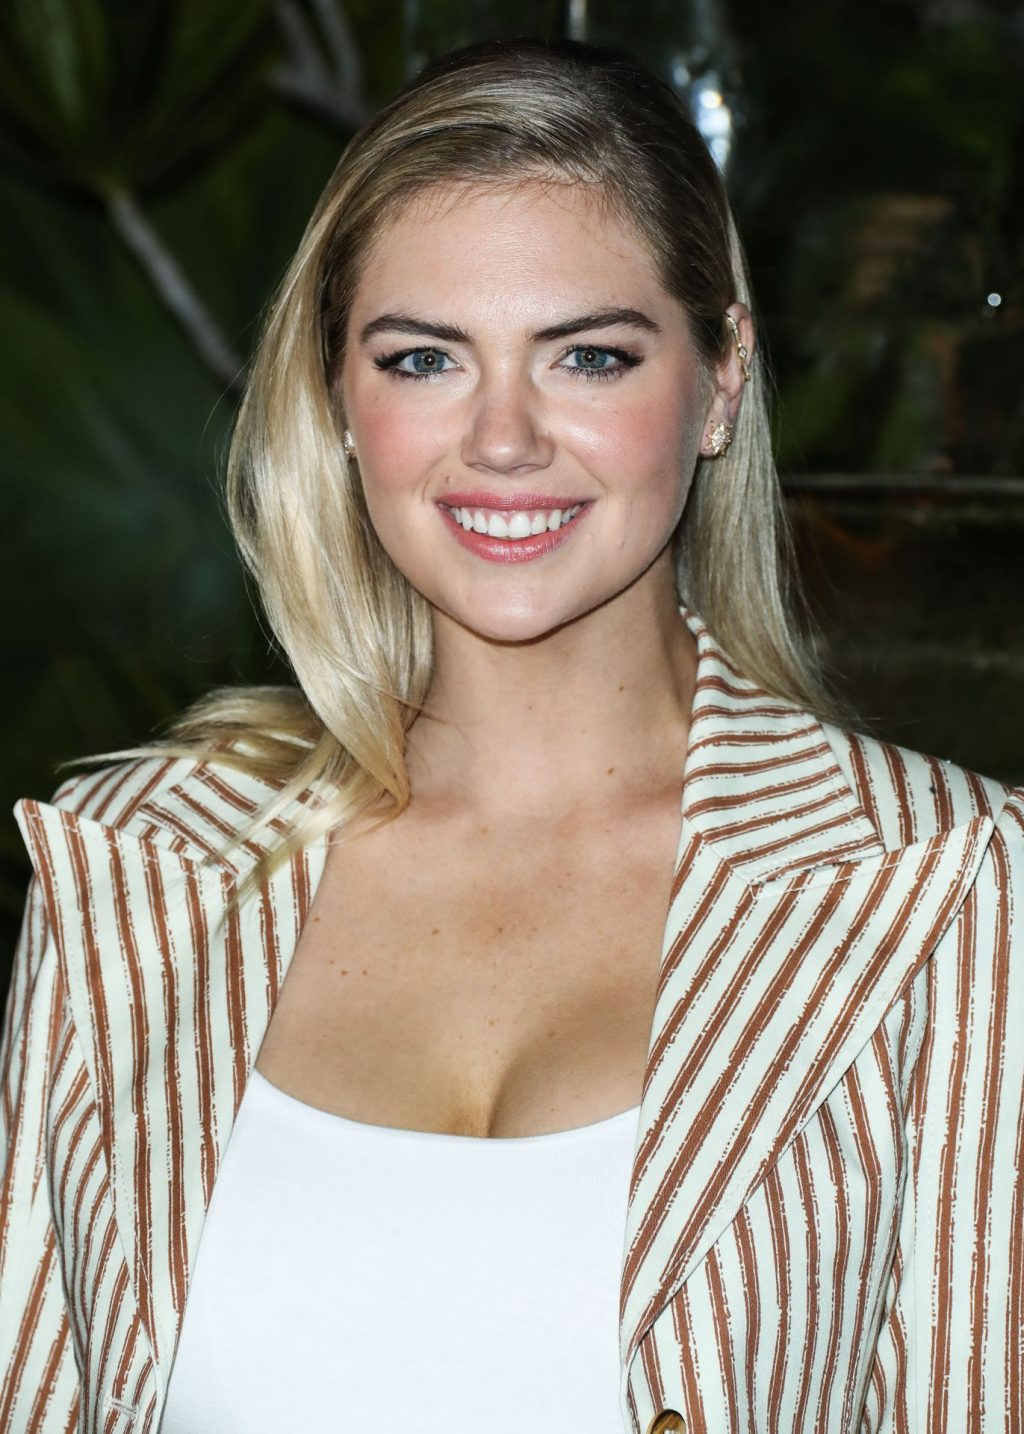 Kate Upton Sexy The Fappening Blog 88 1024x1434 - Kate Upton Attends Canada Goose And Vogue Cocktails & Conversations (104 Photos)